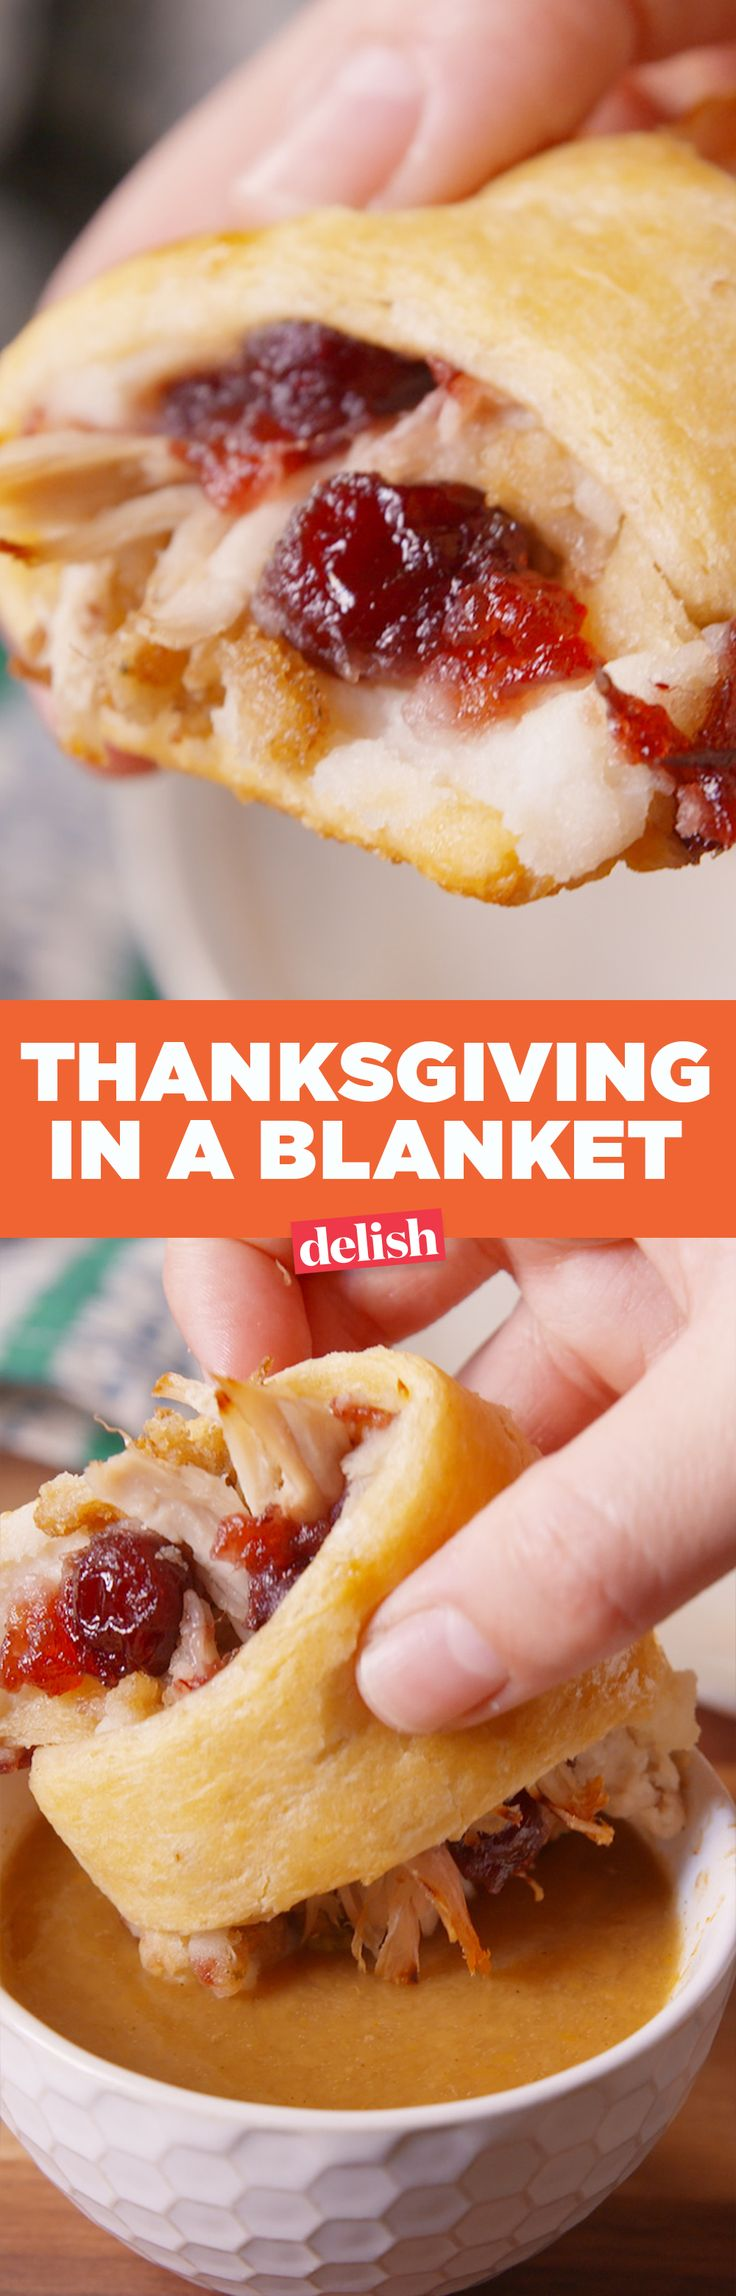 Thanksgiving in a blanket is the most delicious thing you can do with your leftovers. Get the recipe on Delish.com.